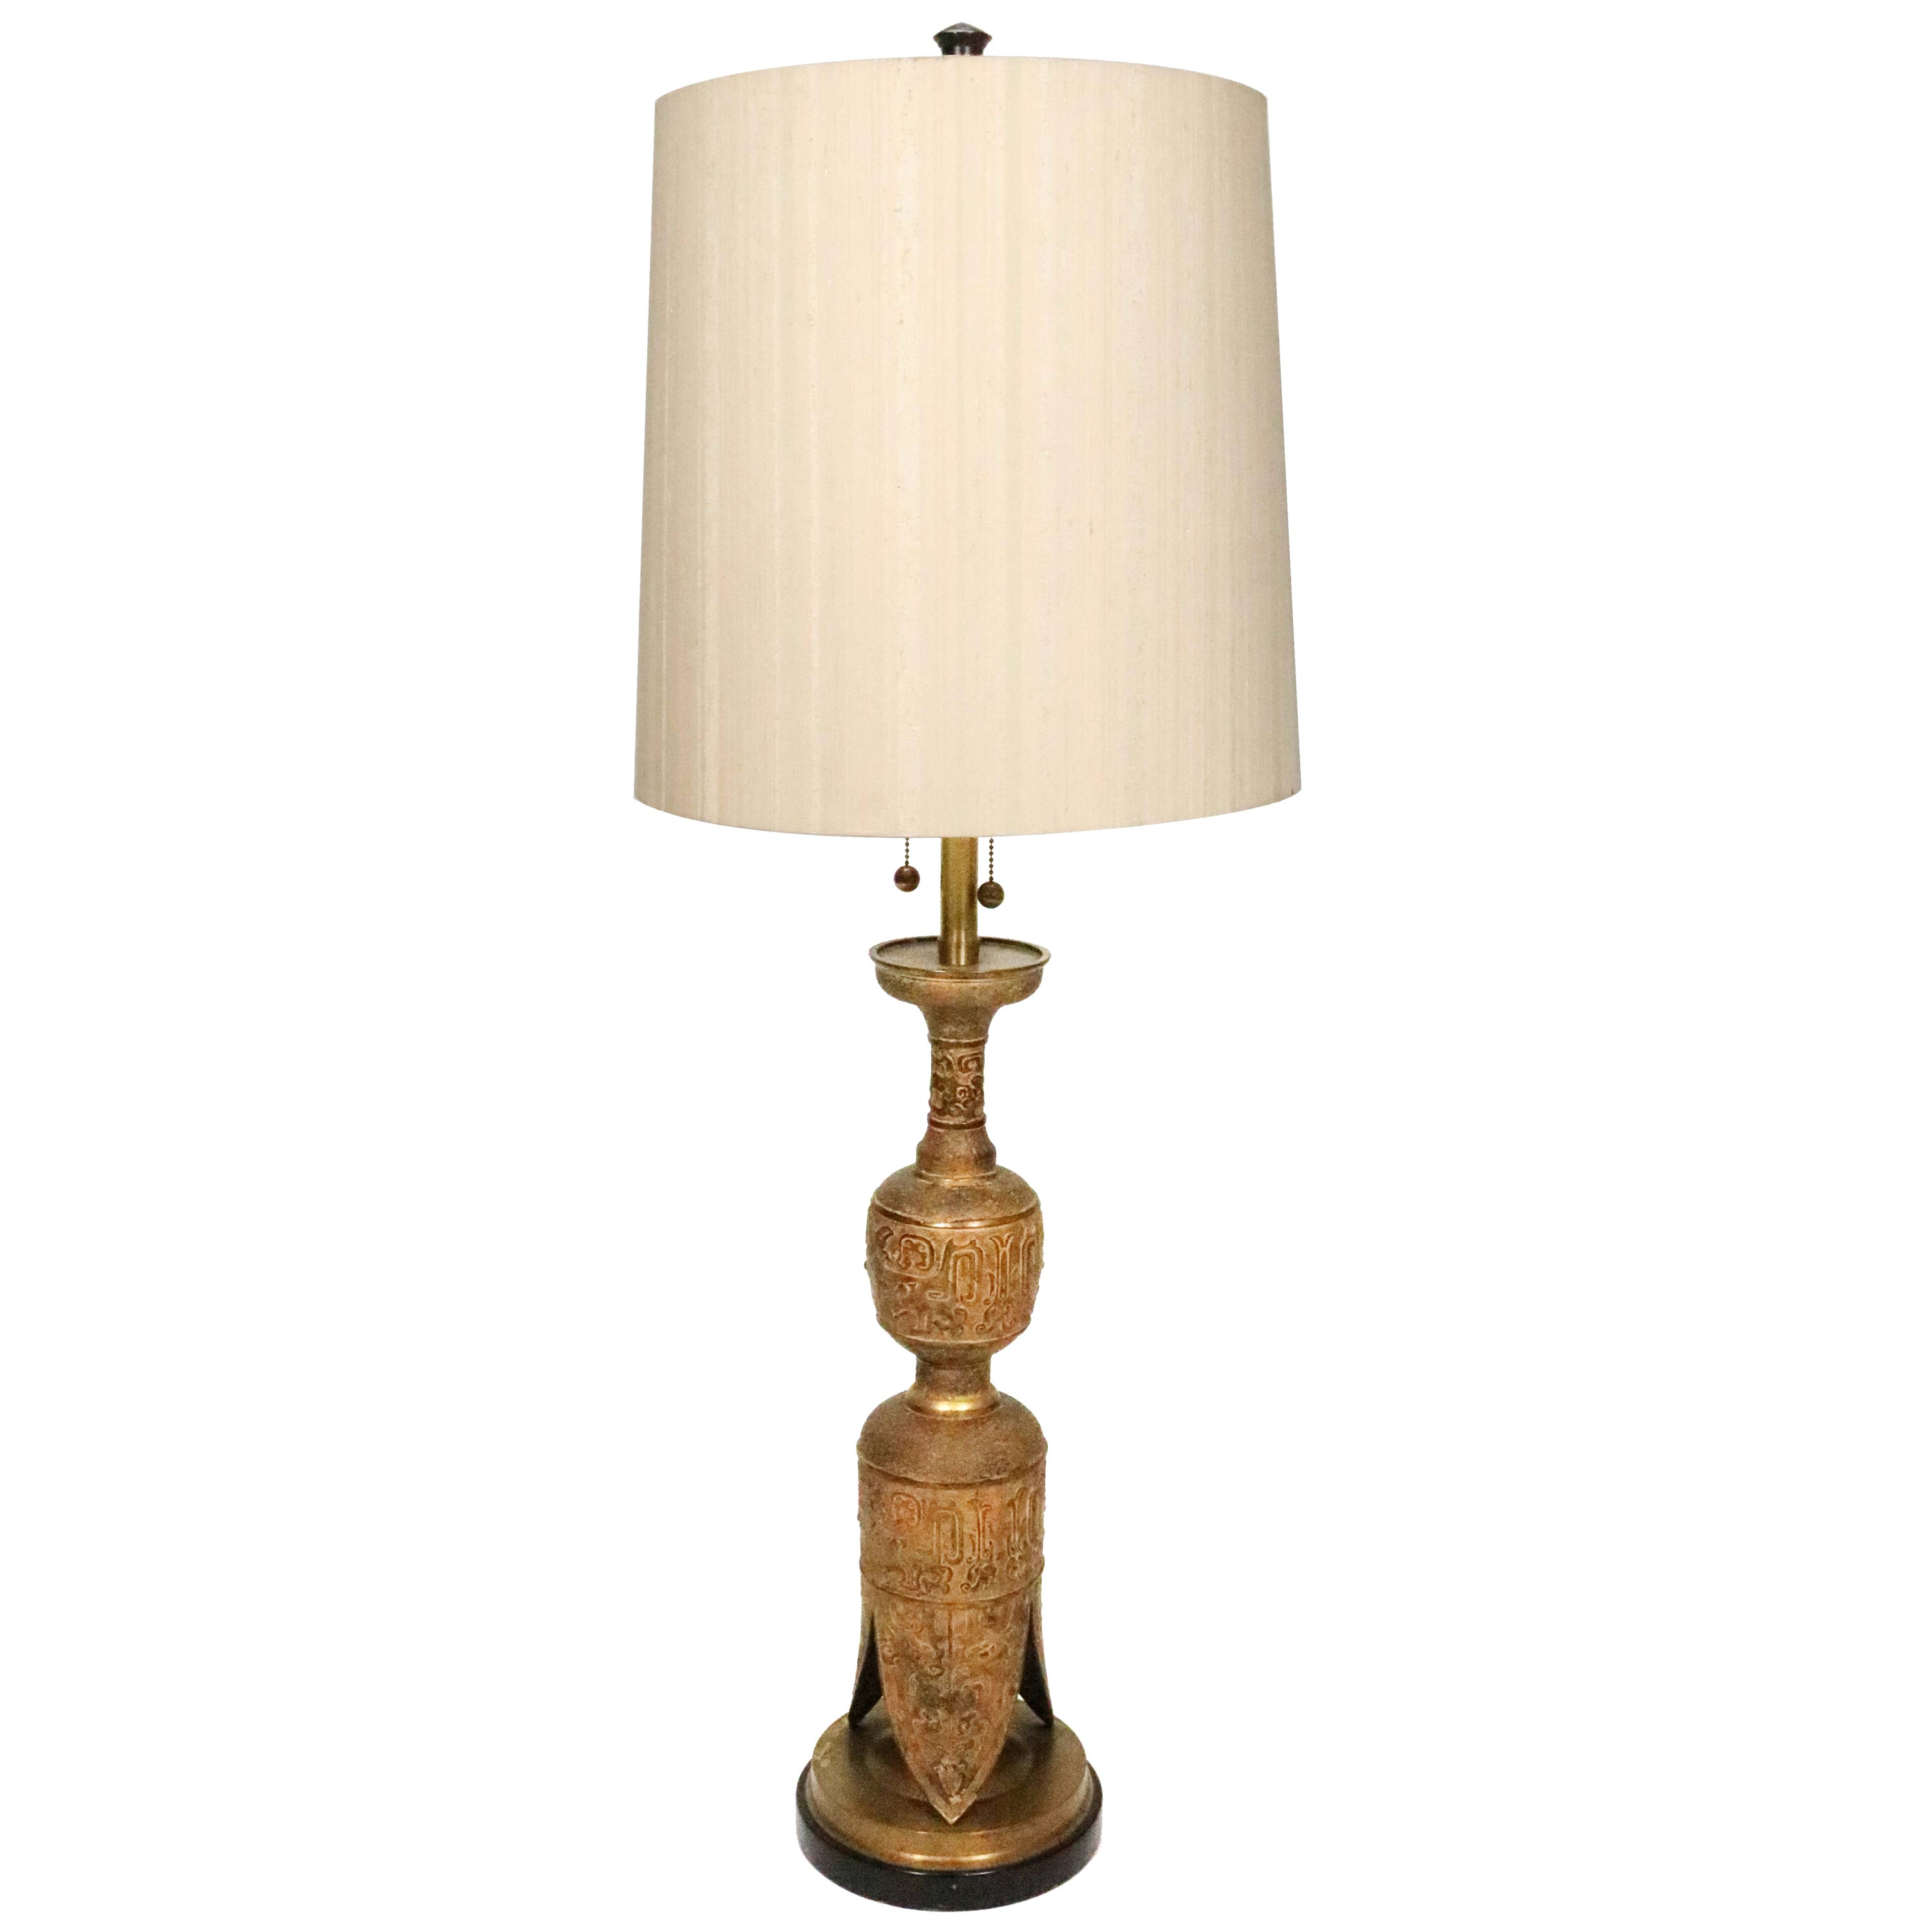 Midcentury Asian Motif Antiqued Brass Table Lamp by Marbro